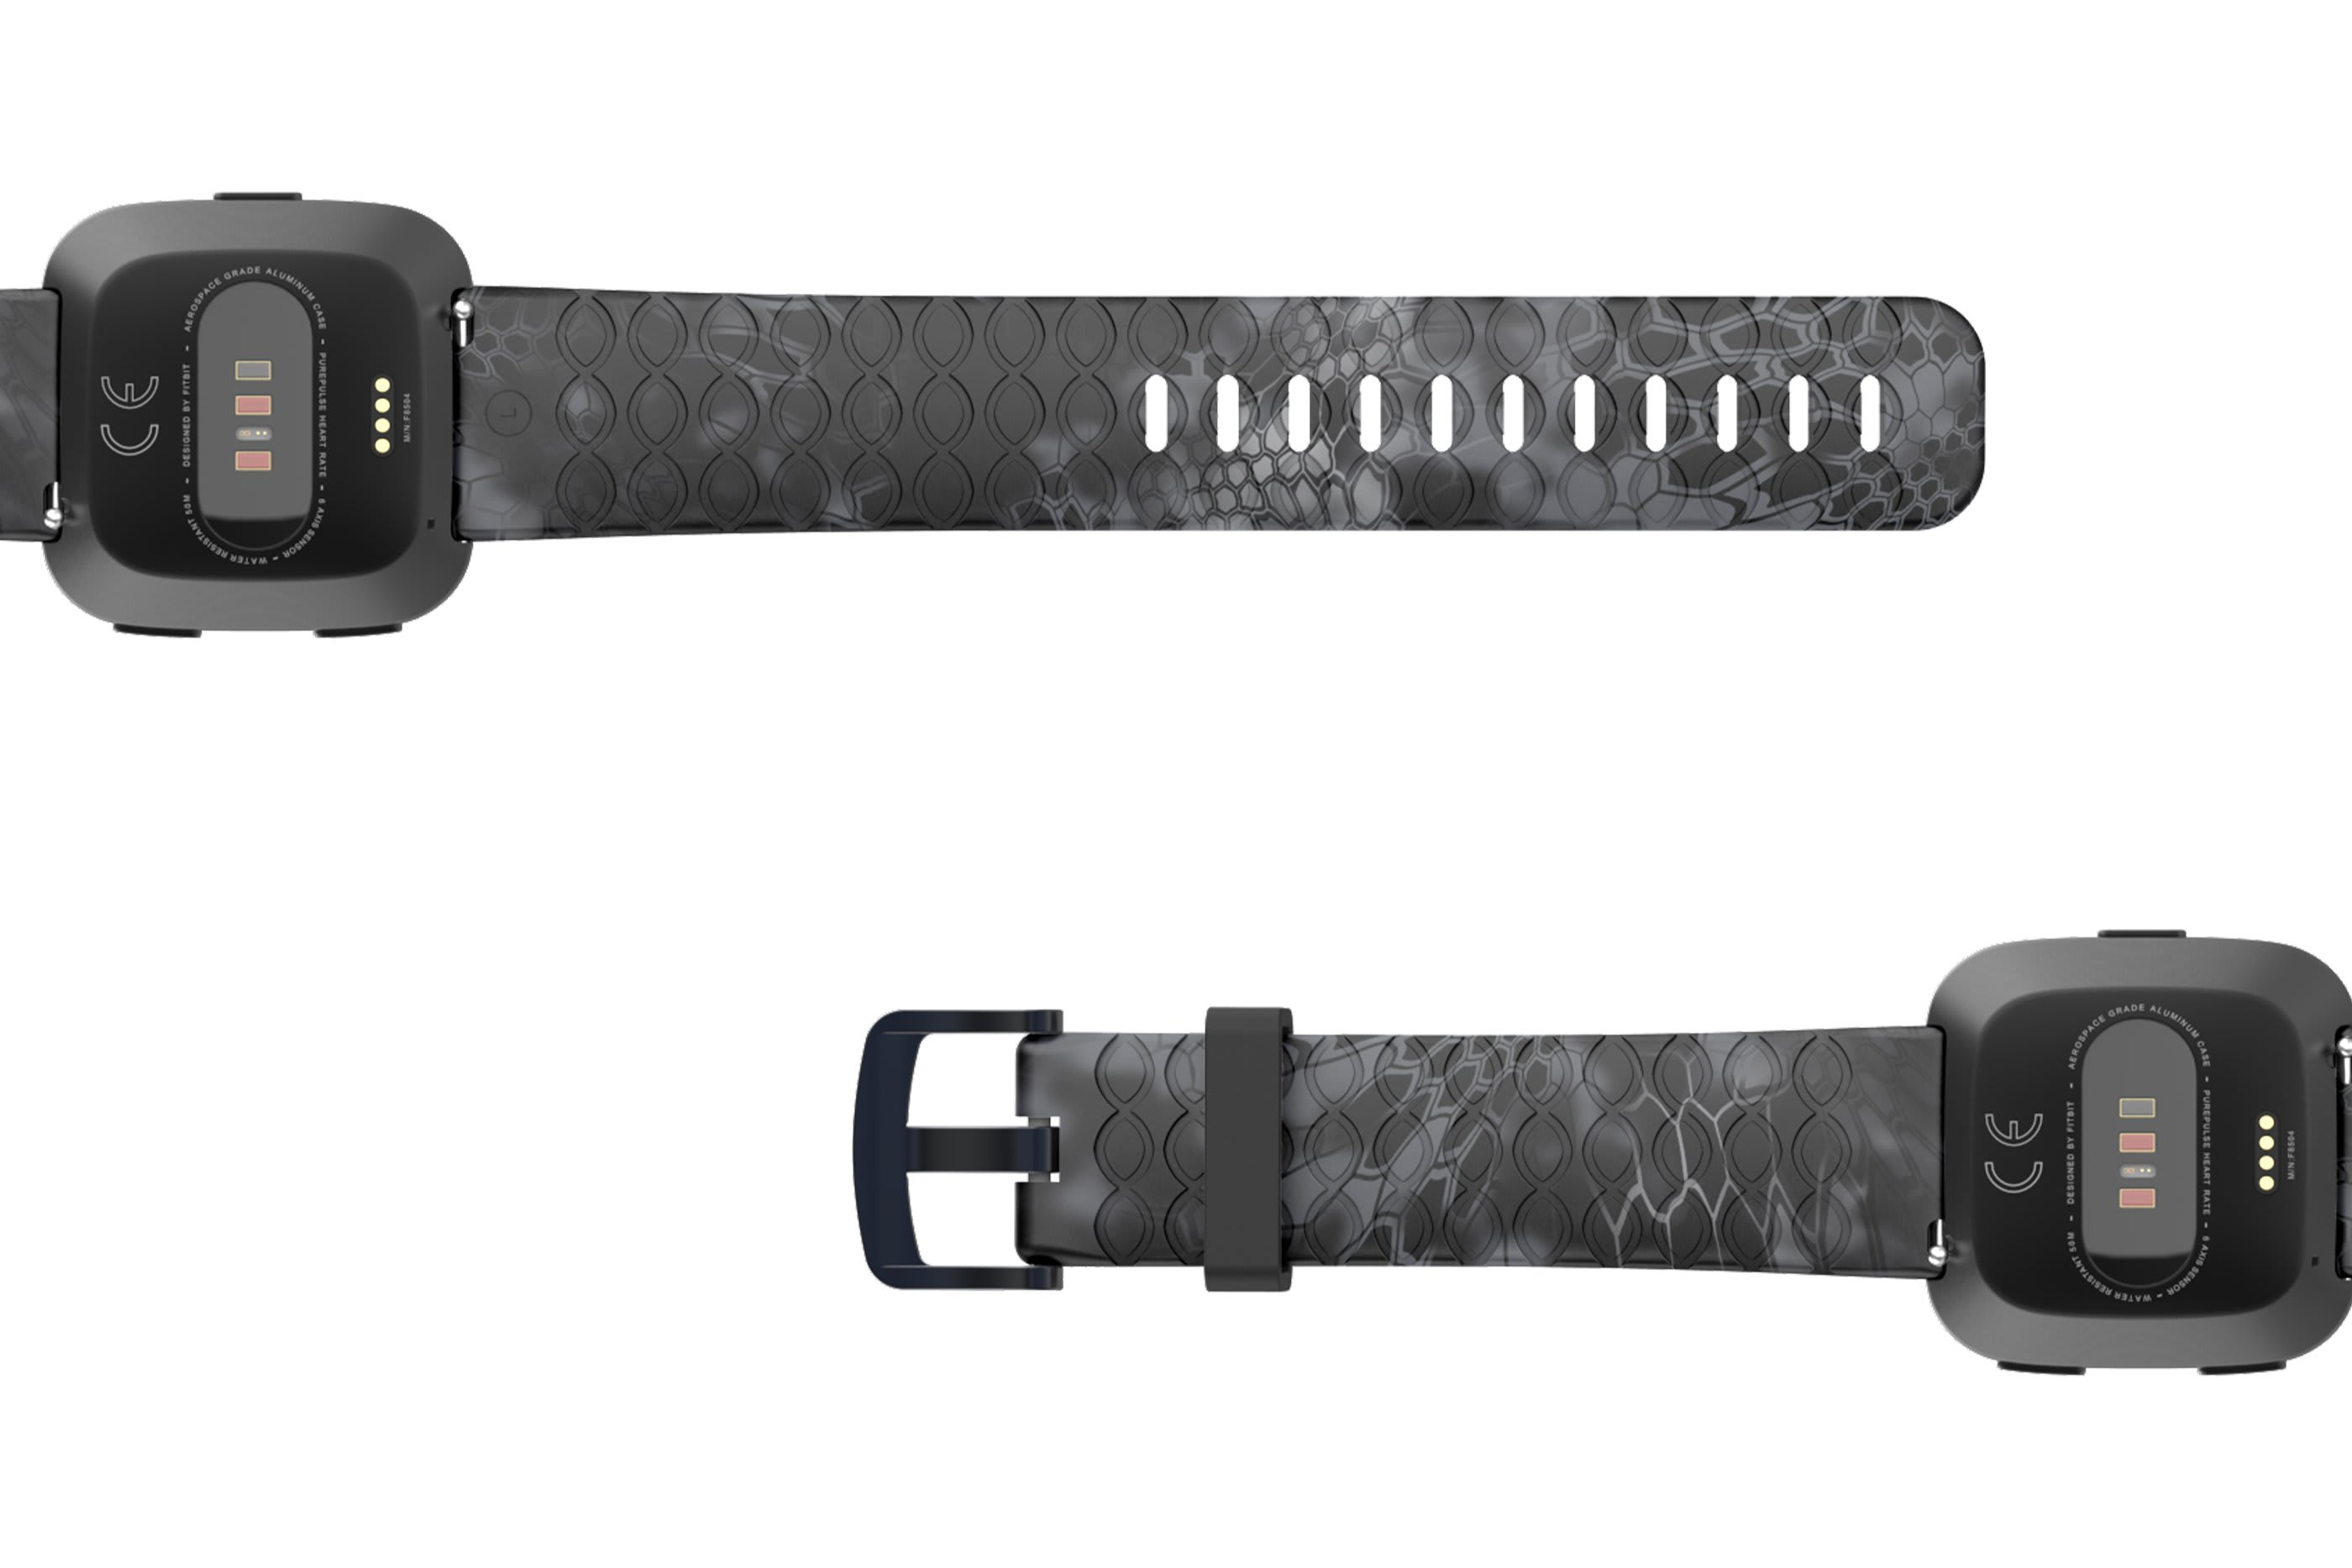 Kryptek Typhon Samsung 22mm   watch band viewed bottom up